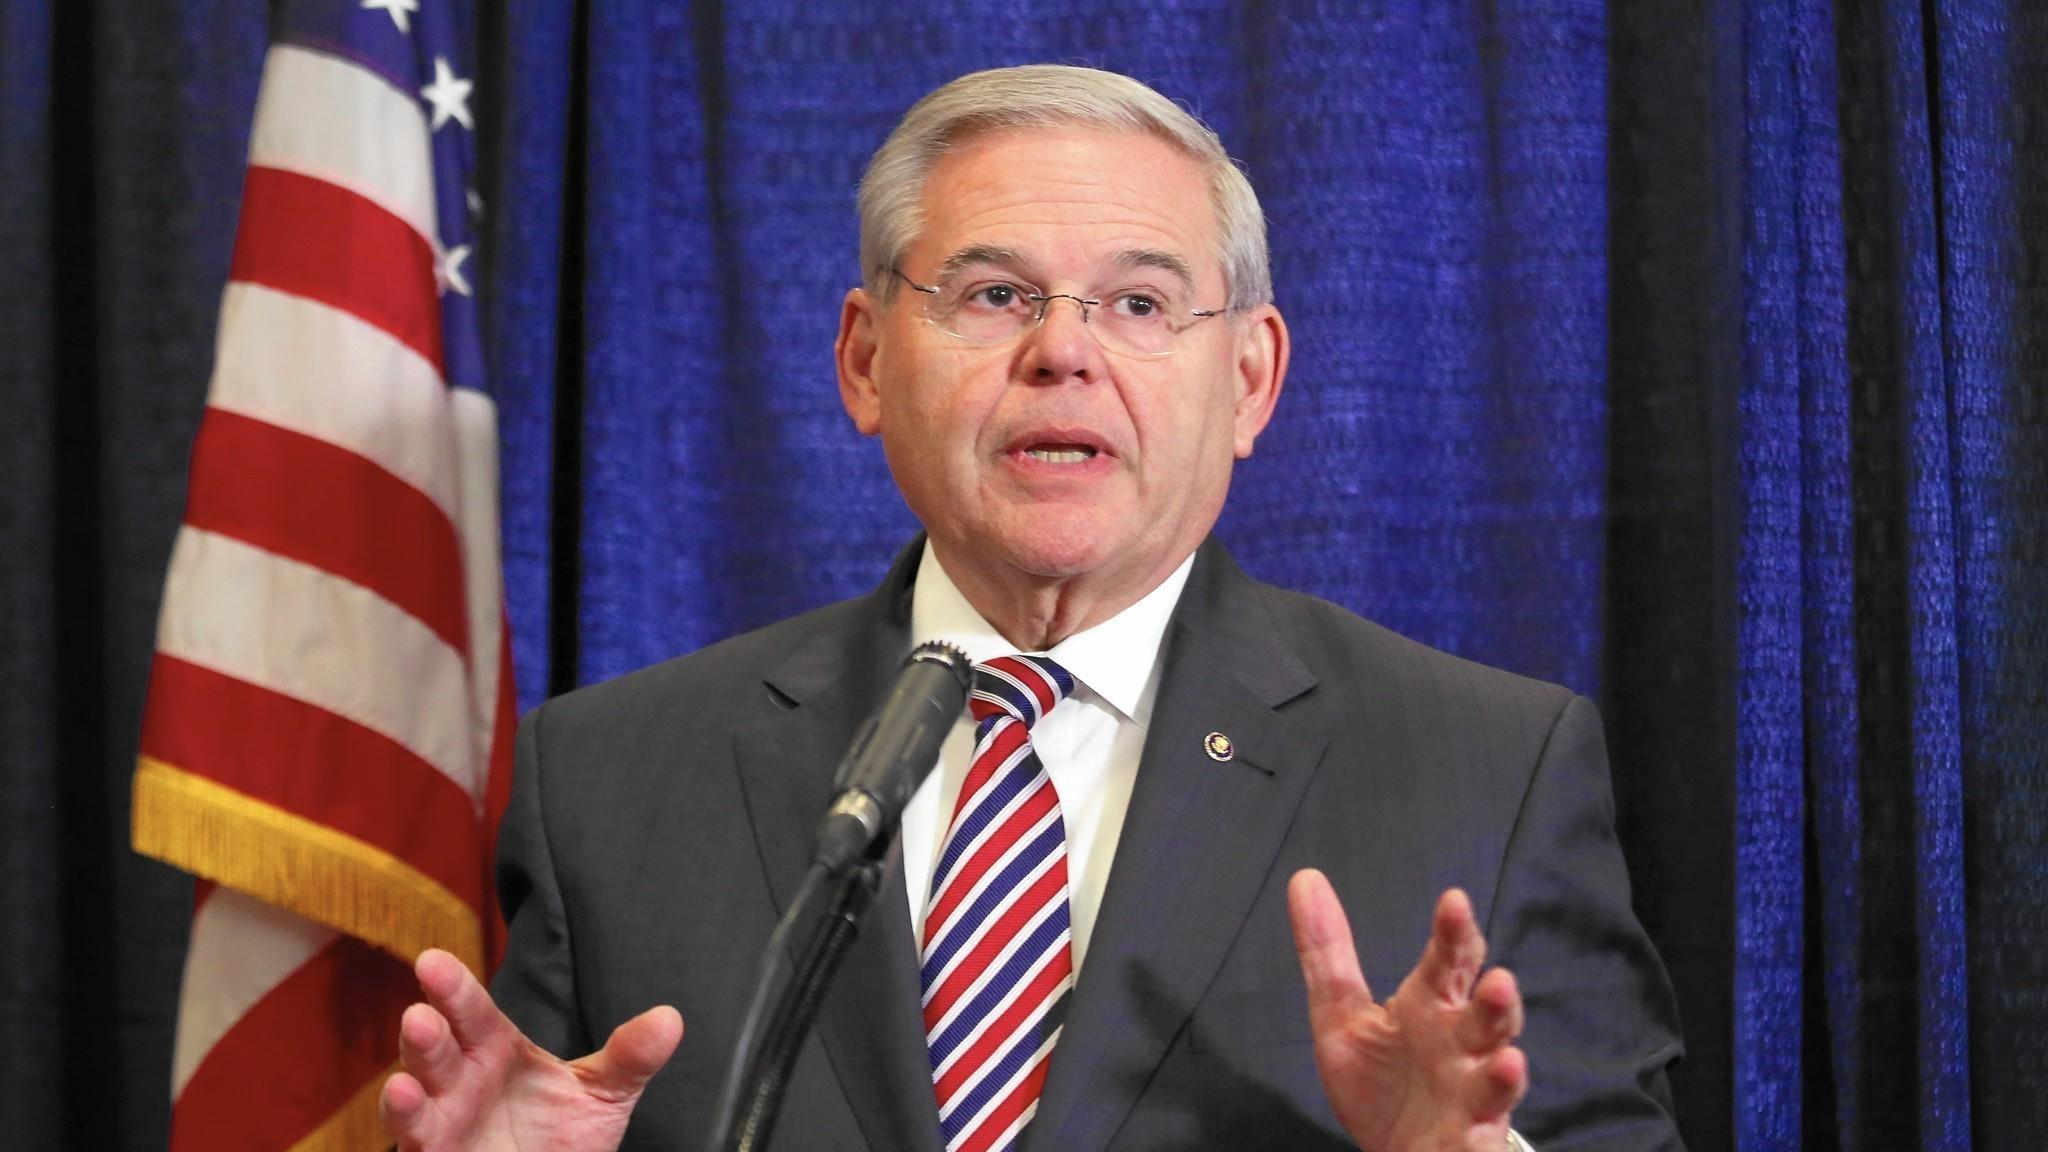 Mitch McConnell calls for ethics investigation into Bob Menendez after mistrial declared